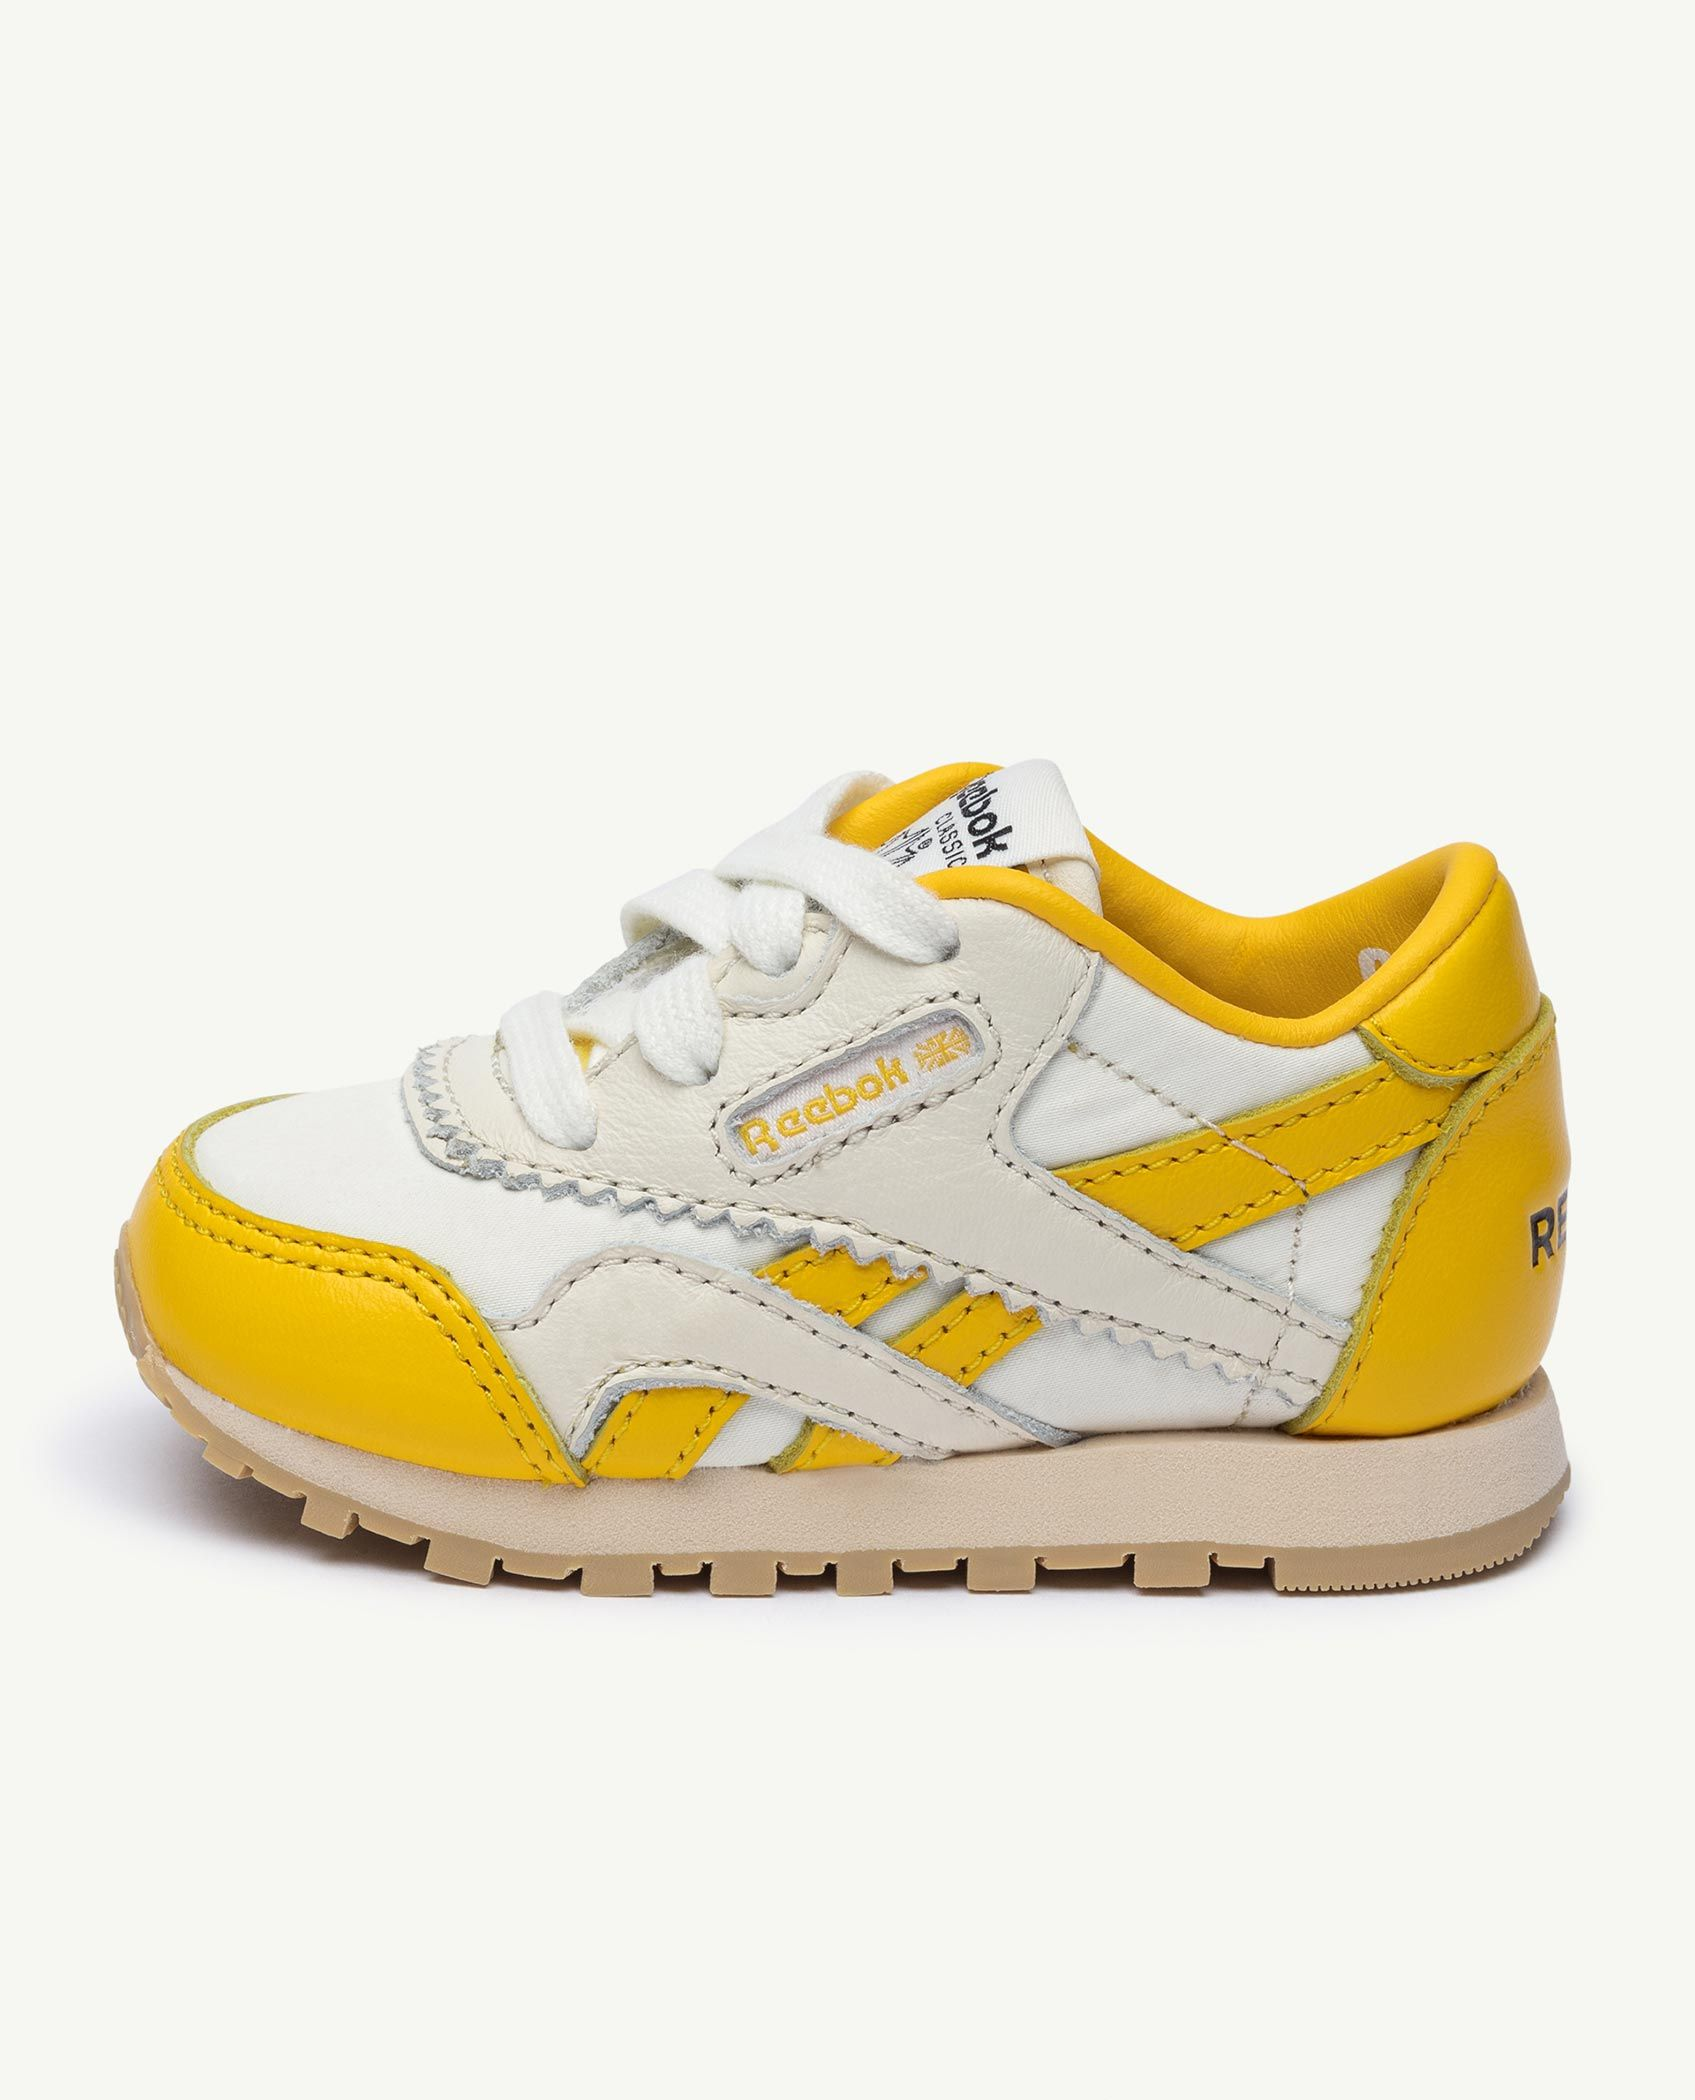 Reebok x The Animals Observatory Classic Nylon Yellow Baby img-1